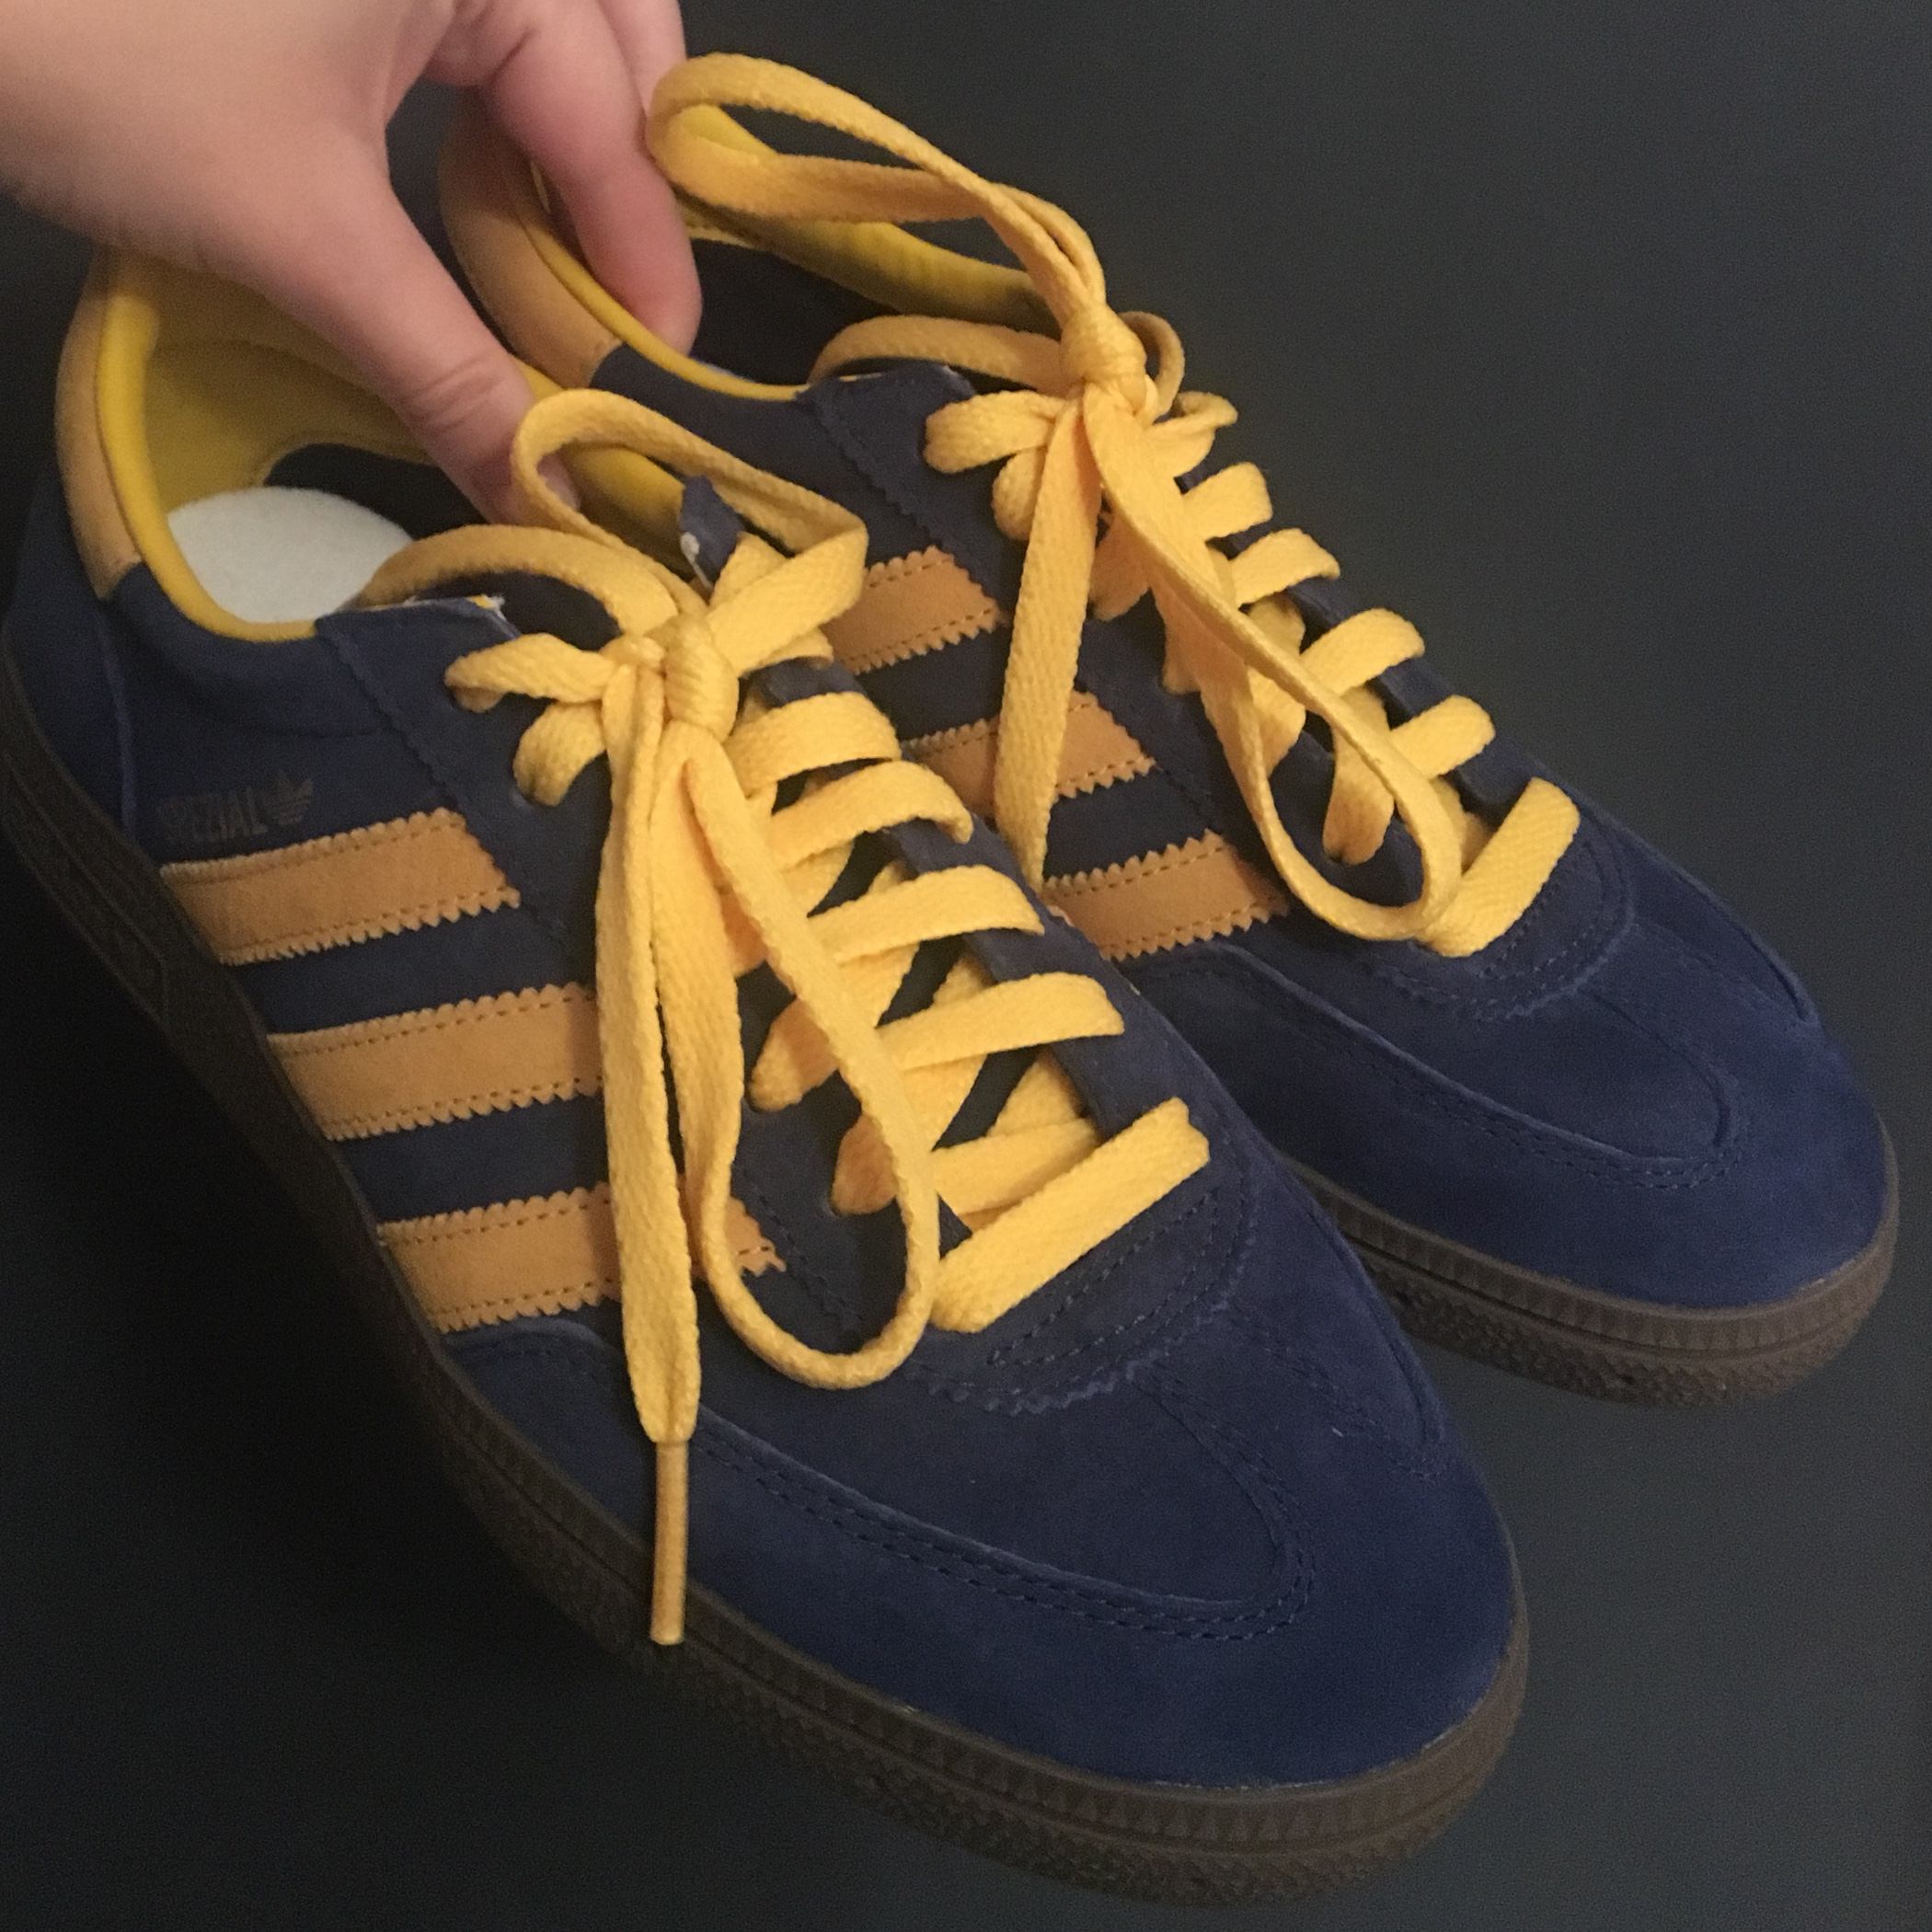 low price new photos sold worldwide Adidas Spezial, size 4. Navy blue, yellow and brown... - Depop